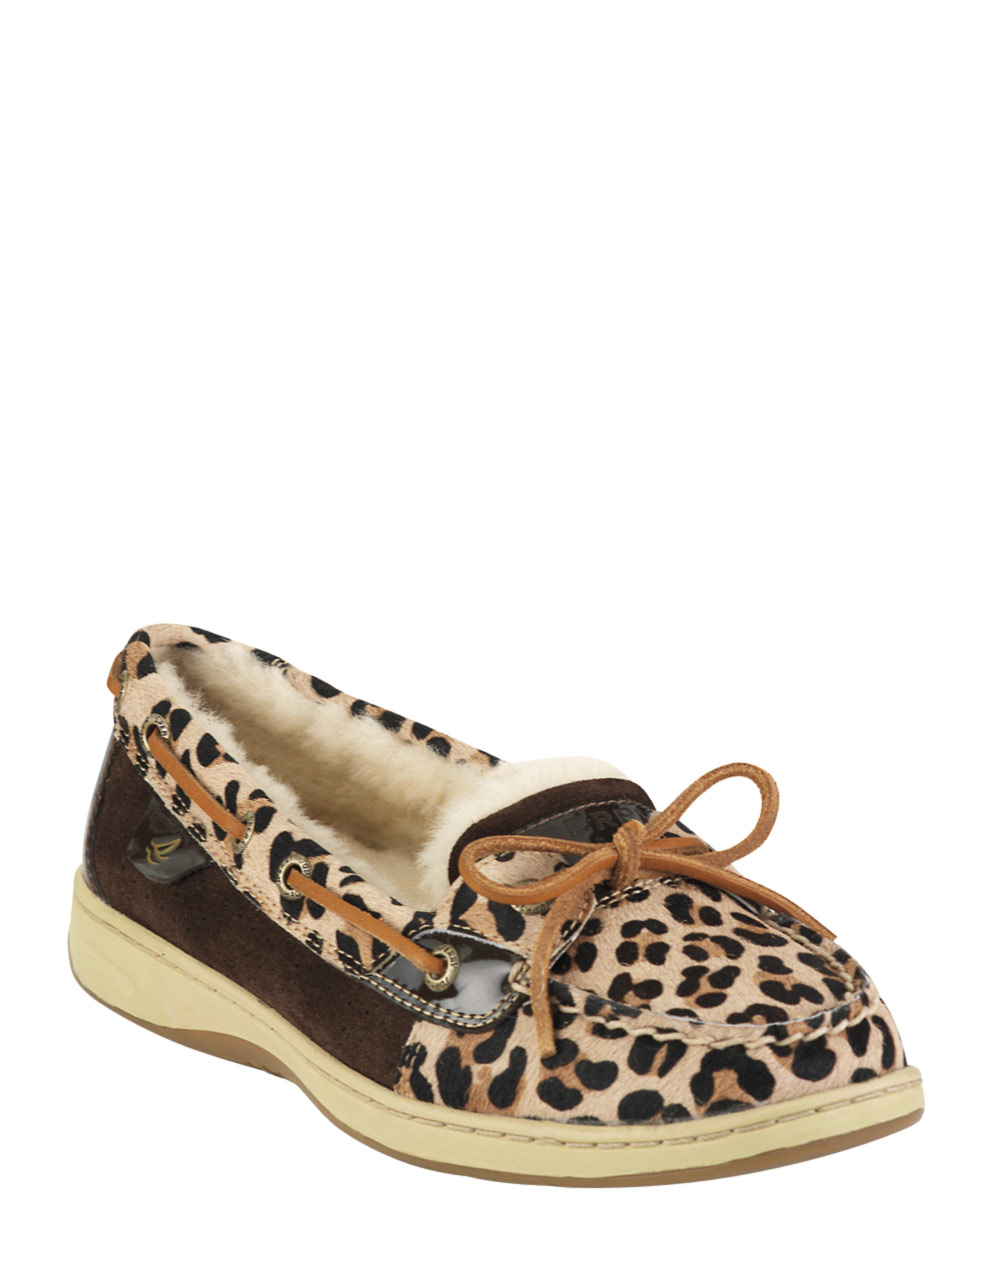 Sperry top sider angel fish leopard print slipon boat for Best boat shoes for fishing